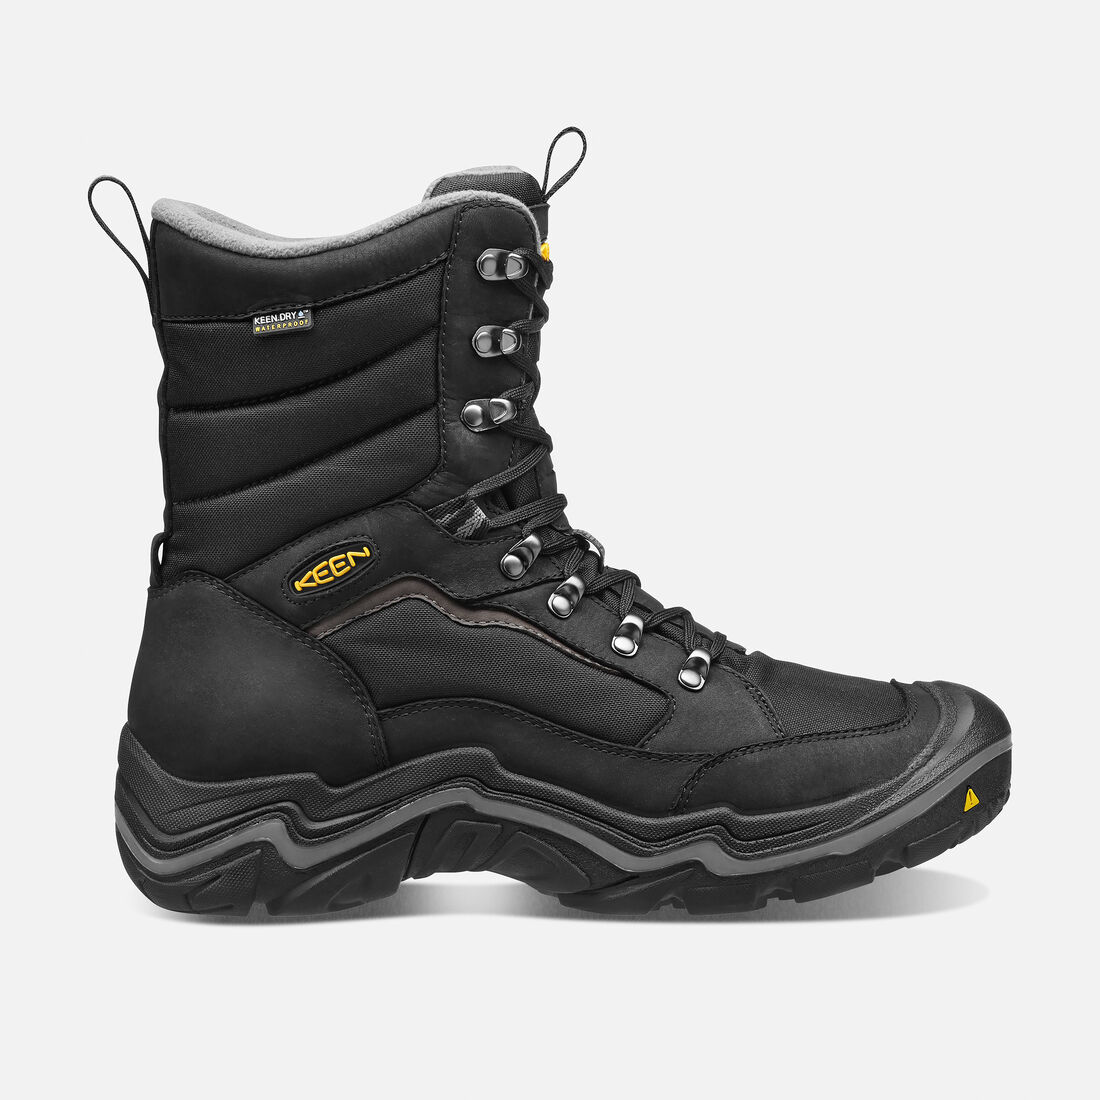 29b861b7734 Men's Durand Polar Waterproof Boot in Black Gargoyle - large view.